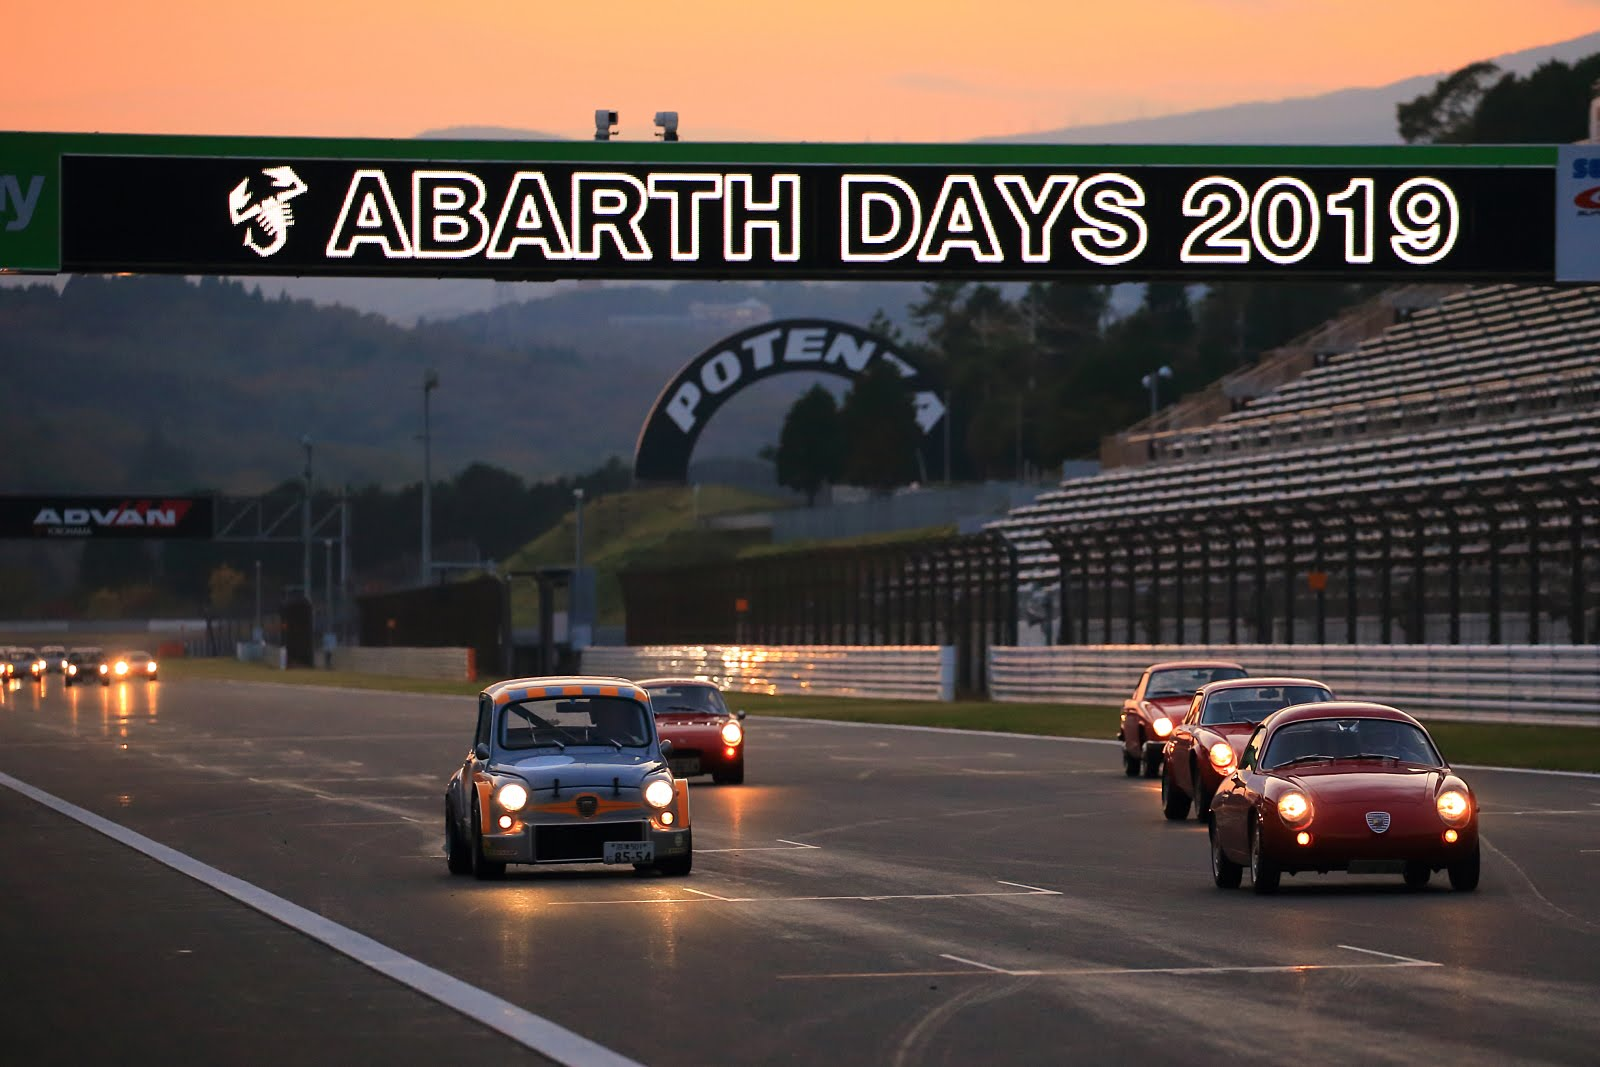 191206_Abarth_Day_01